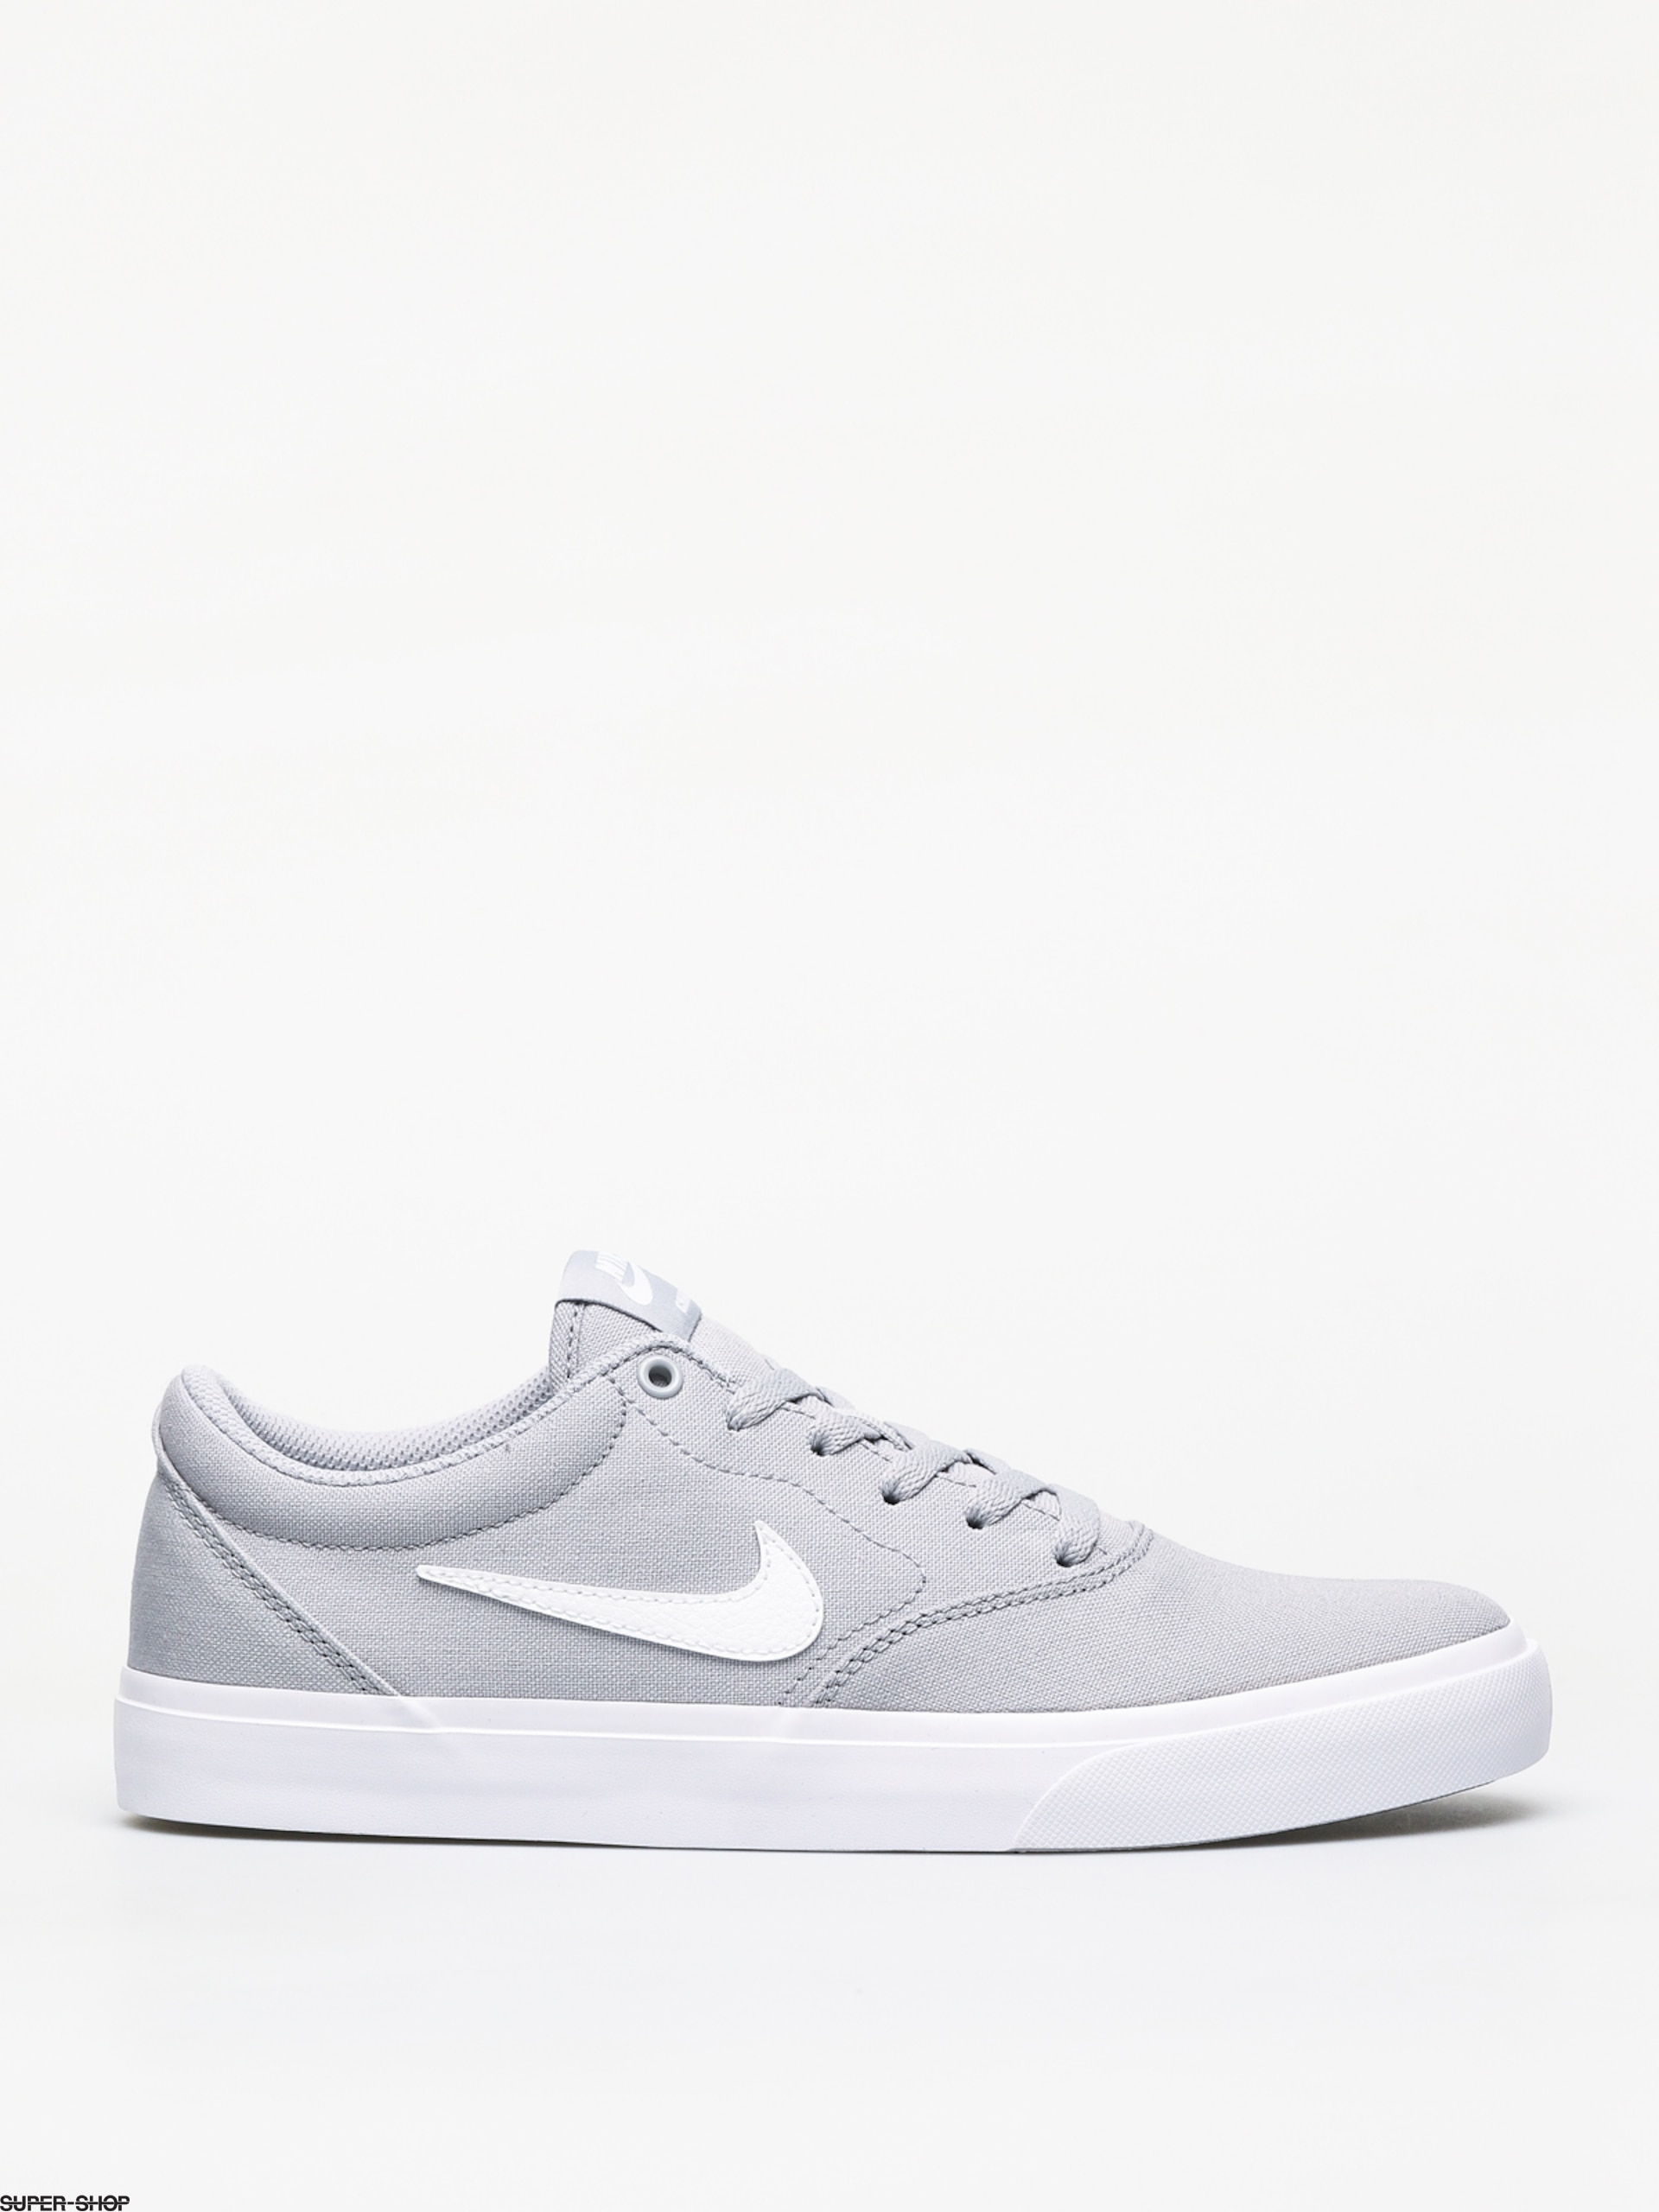 pick up 78f85 07261 1036446-w1920-nike-sb-charge-slr-shoes-wolf-grey-white.jpg